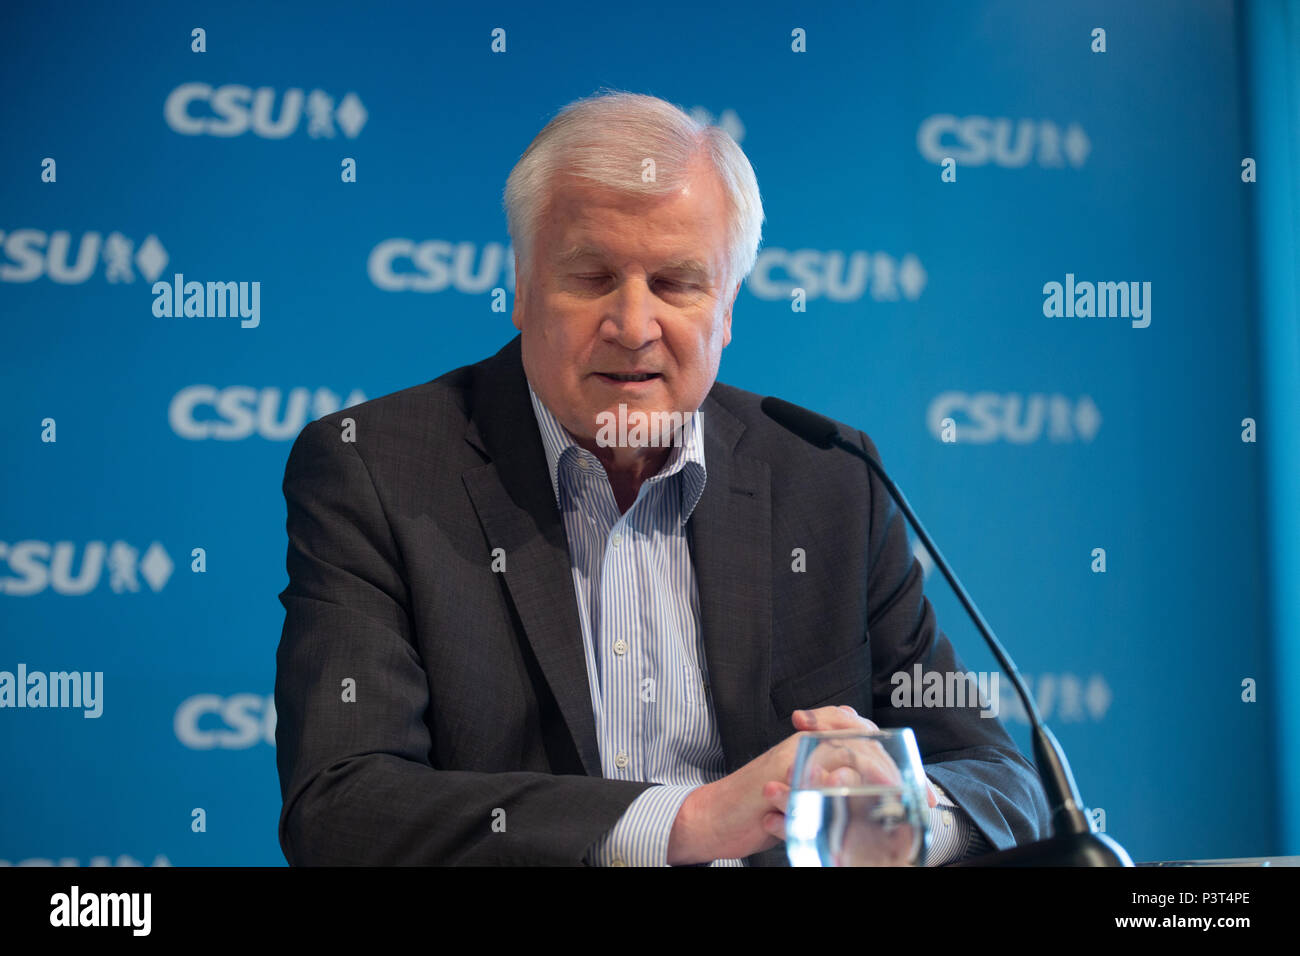 German minister of Interiour and CSU chairman Horst Seehofer speaks at the press conference. The Christian Social Union (CSU) held a board meeting, where they discussed about the argue with German Chancellor Angela Merkel and her Christian Democratic Union about the refugee crisis and the migration master plan (Masterplan Migration). (Photo by Alexander Pohl/ Pacific Press) - Stock Image